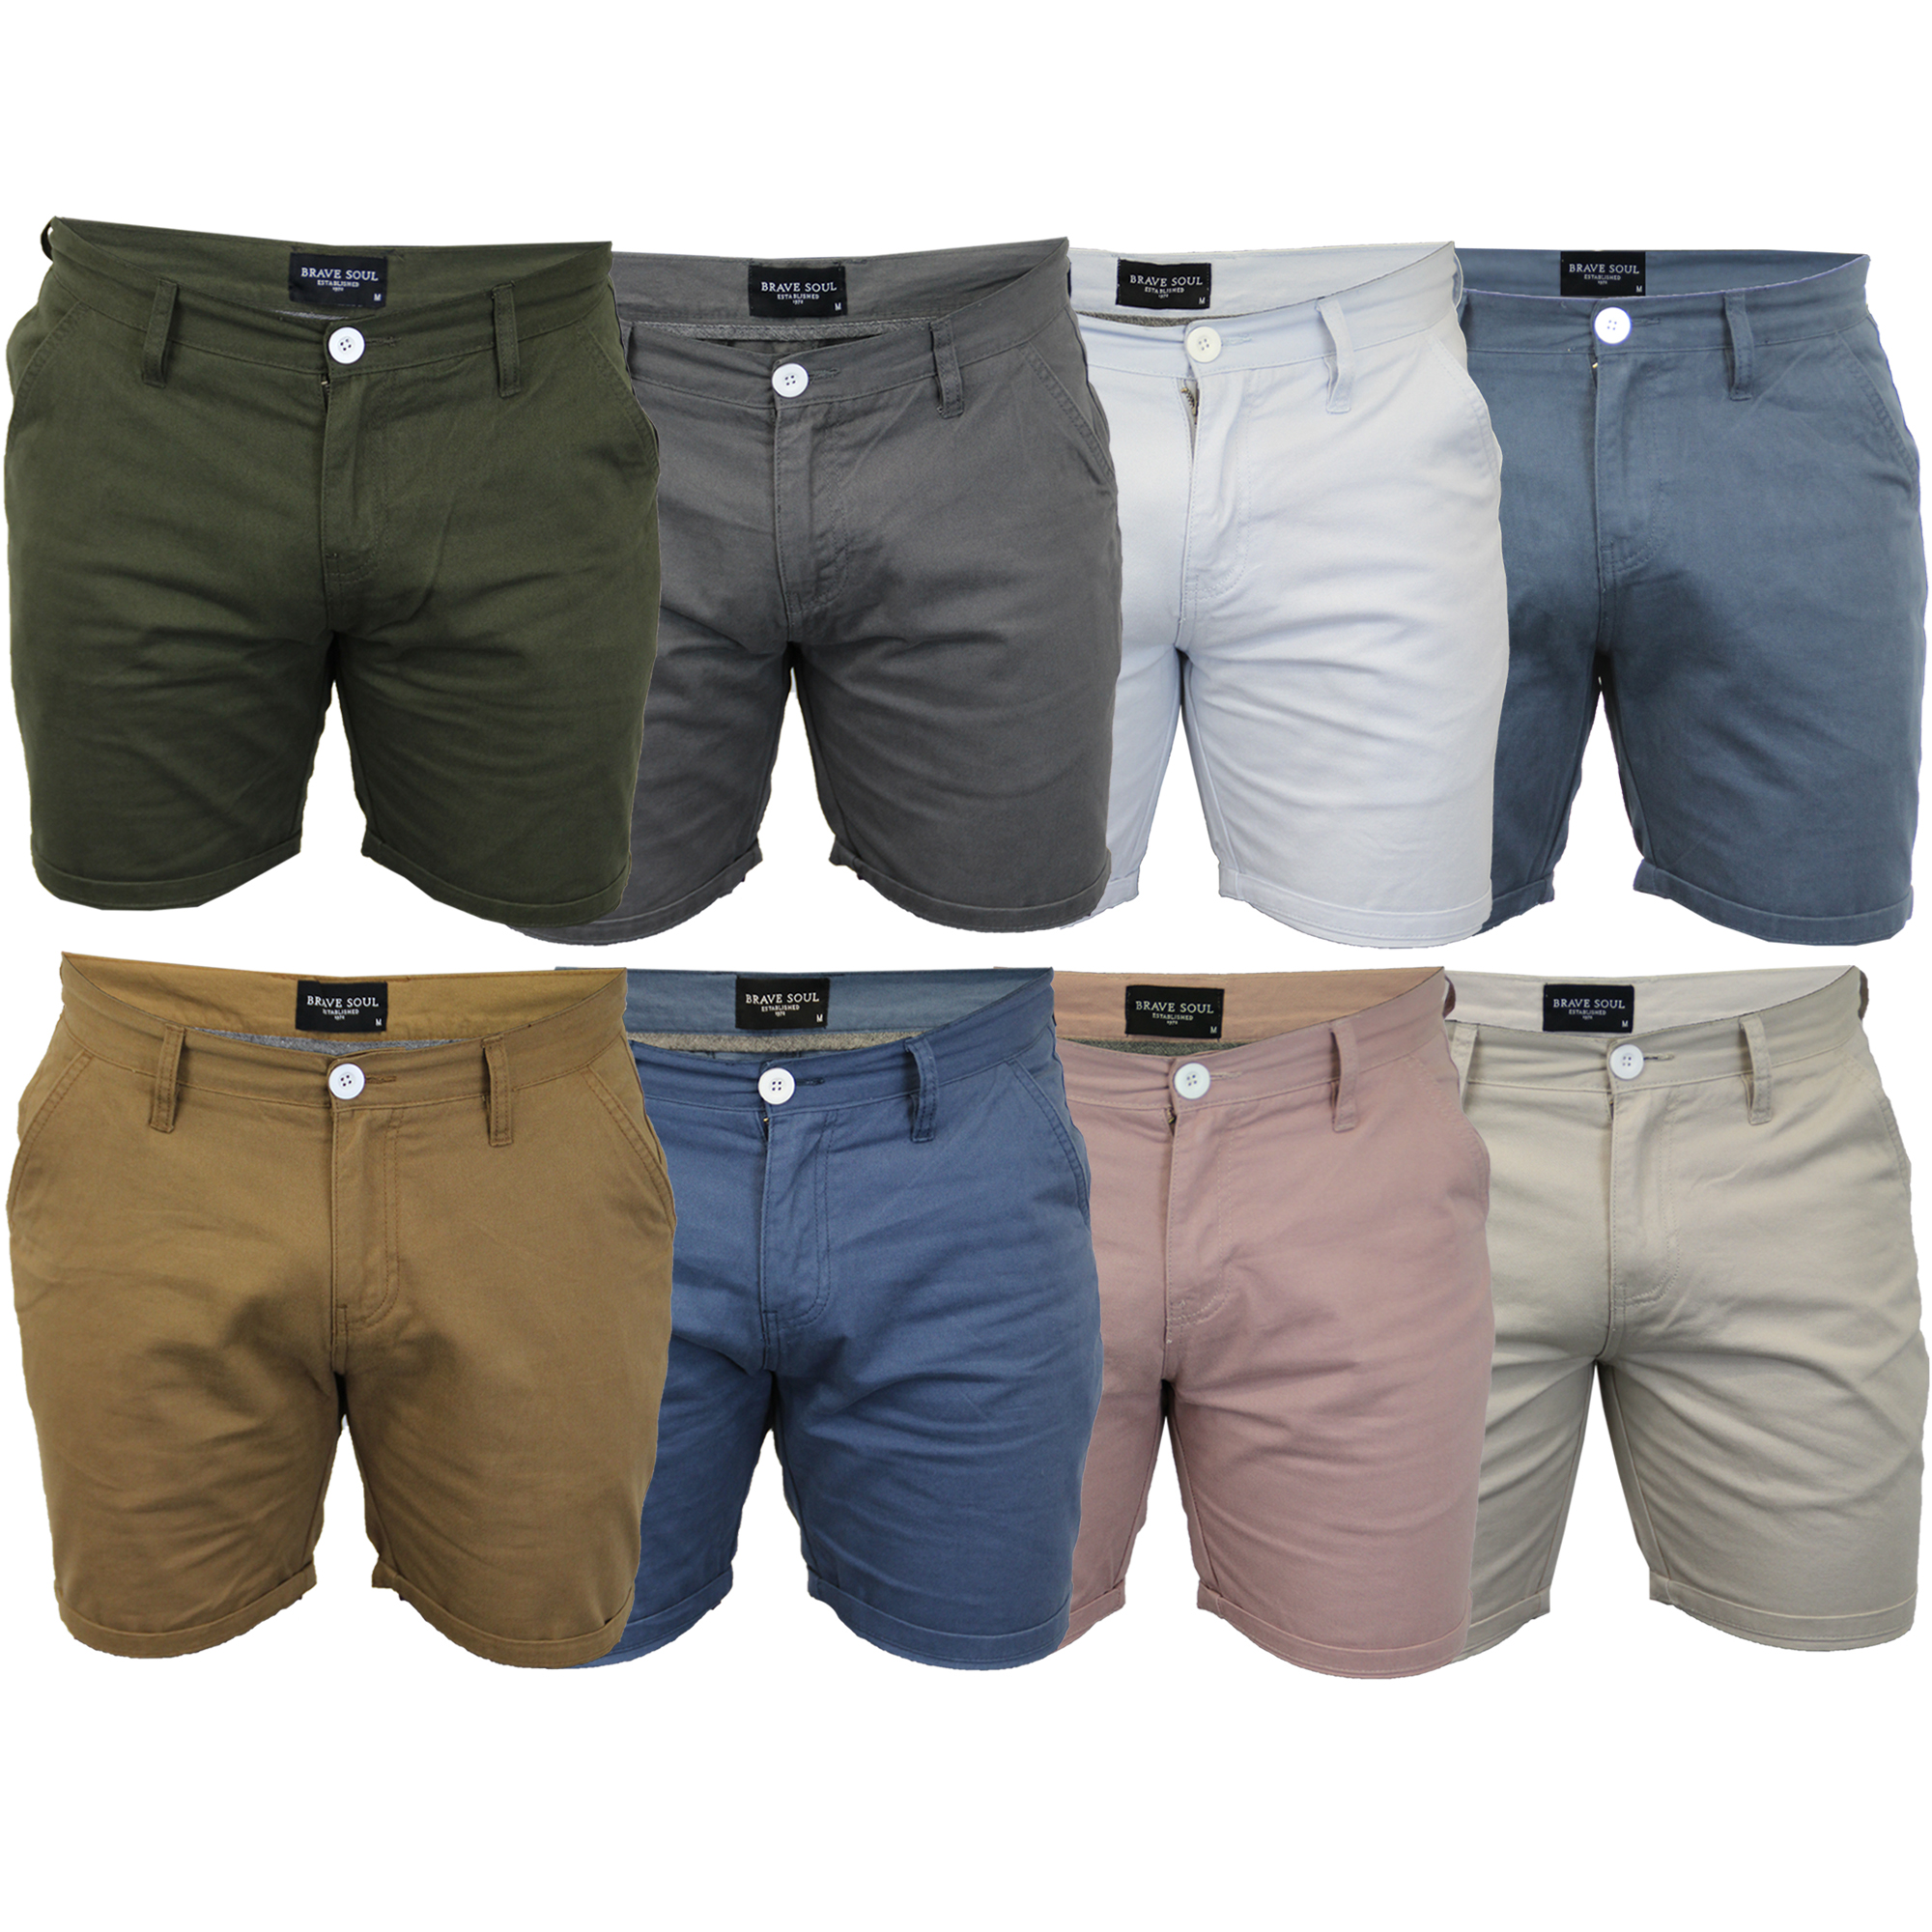 584d9f3d Details about Mens Chino Shorts Brave Soul Smith Roll Up Cotton Half Pants  Casual Summer New